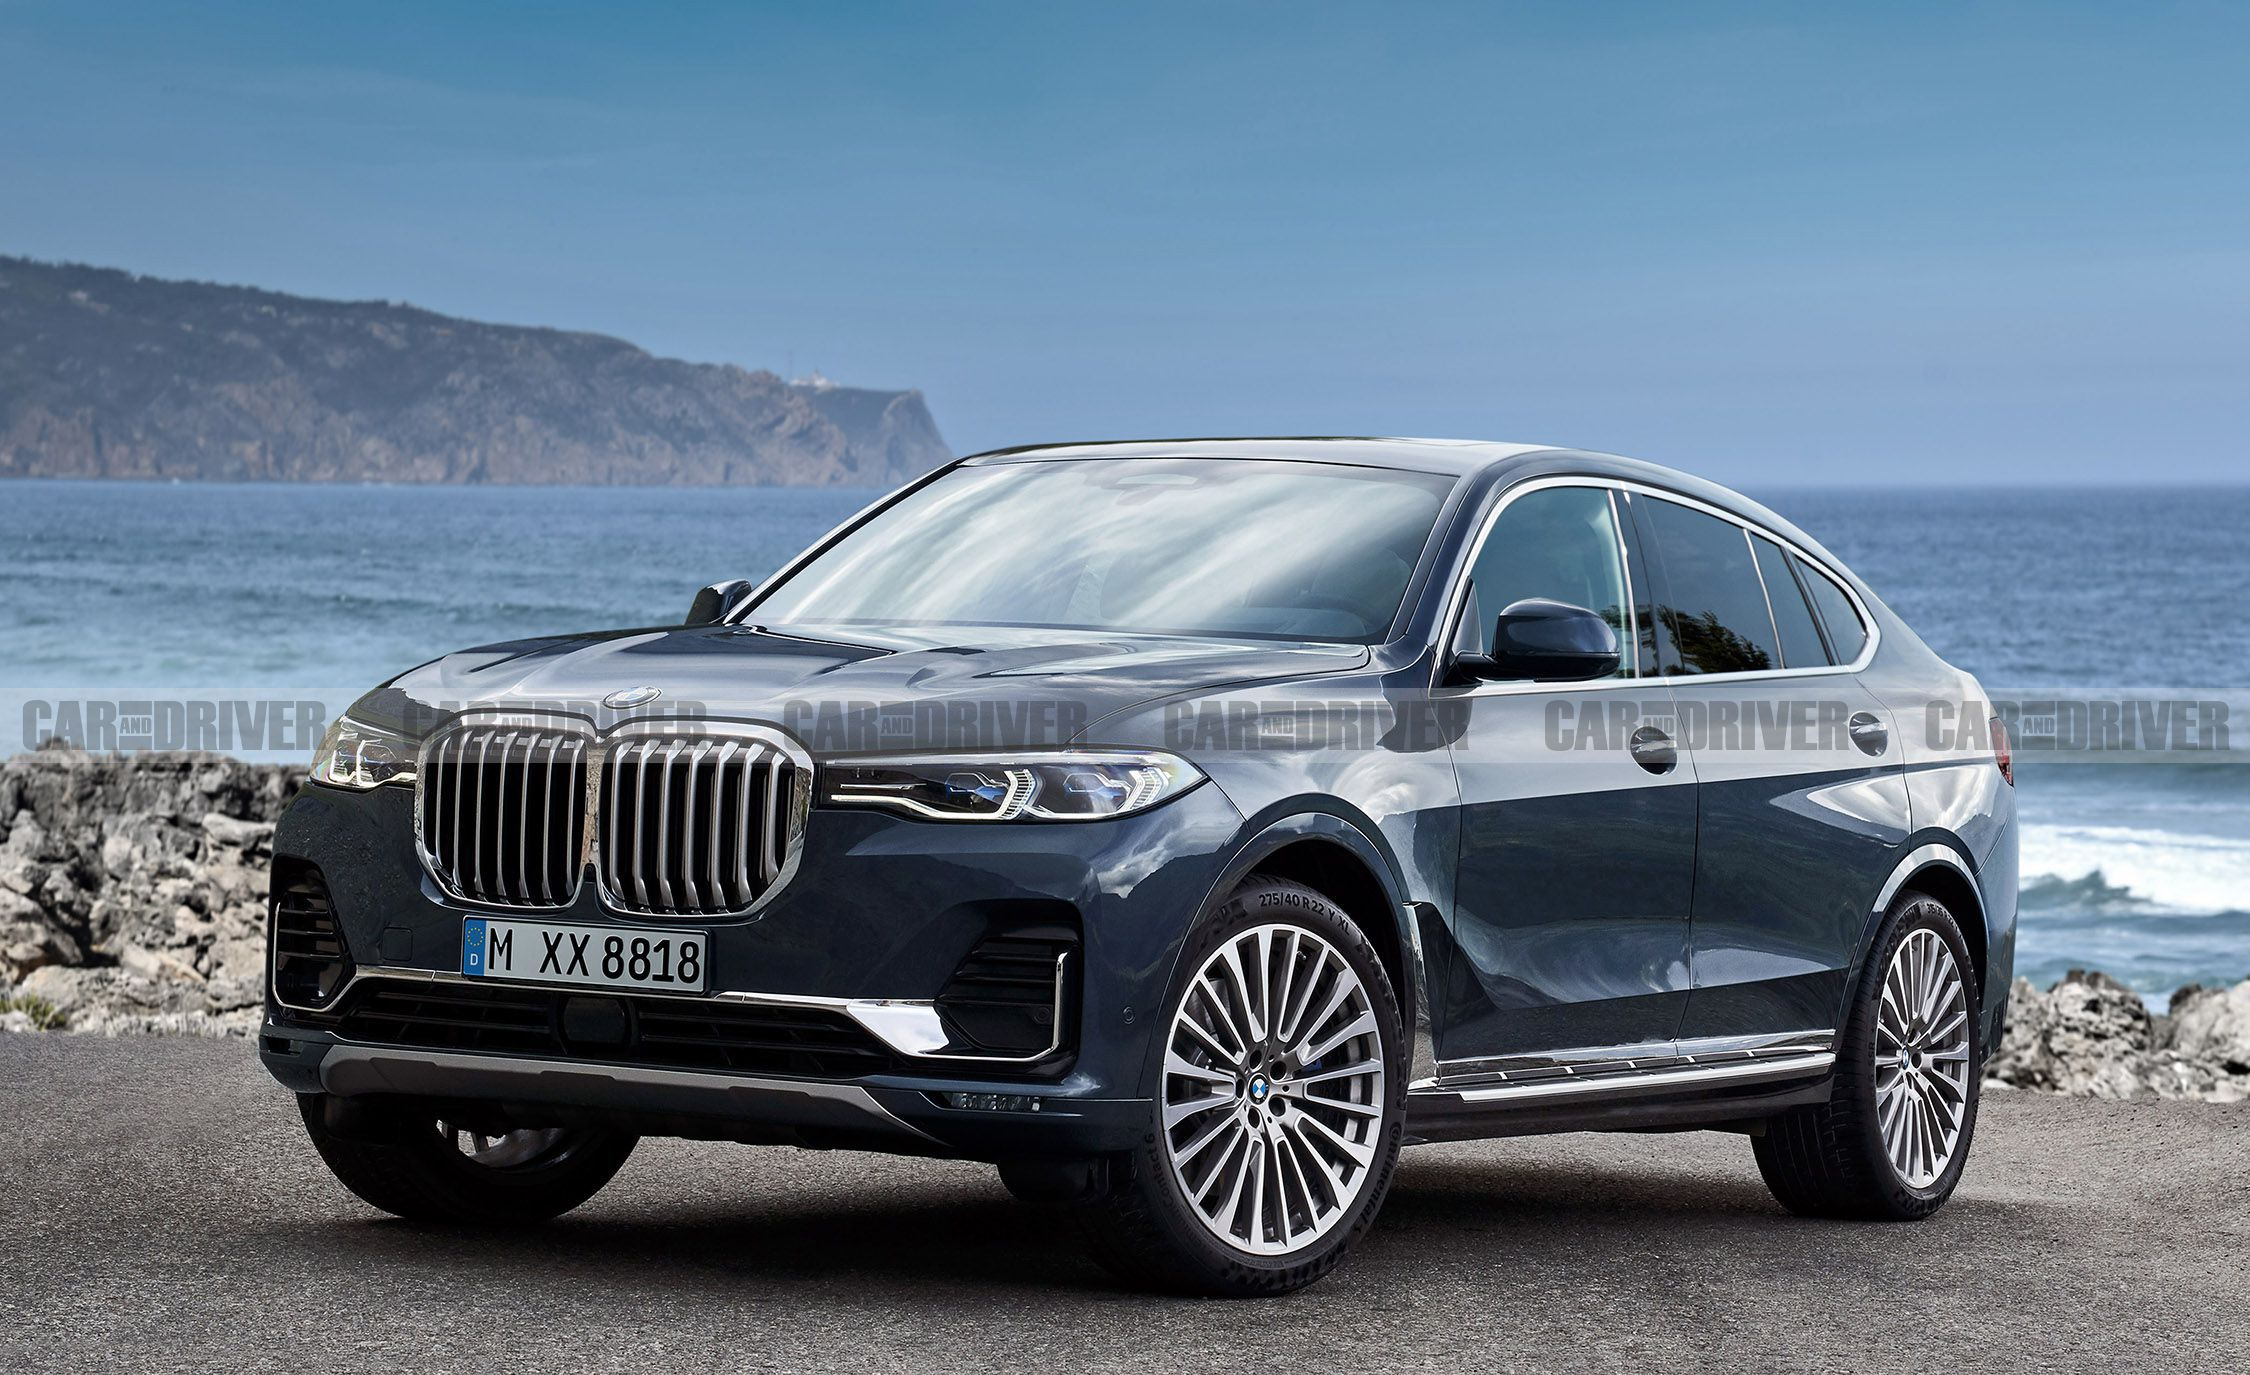 X8 Bmw >> This Is What A Bmw X8 Would Look Like